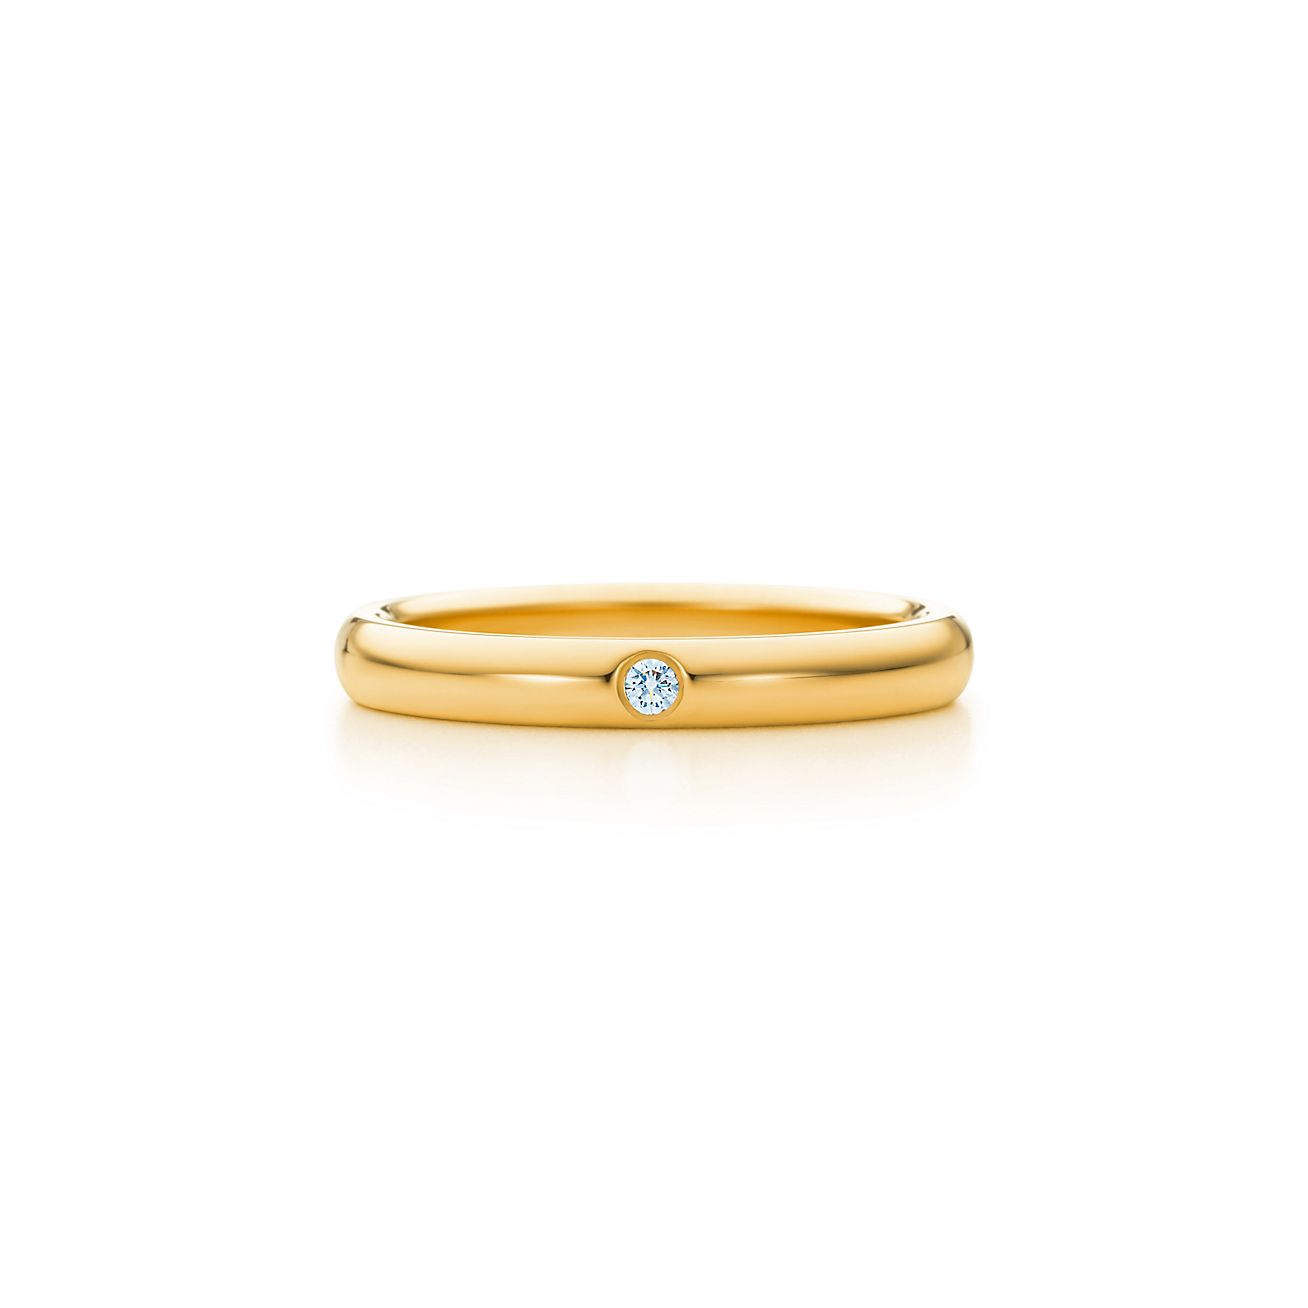 jewelry dy yurman band ring delaunay gold in david lyst faceted narrow bands metallic